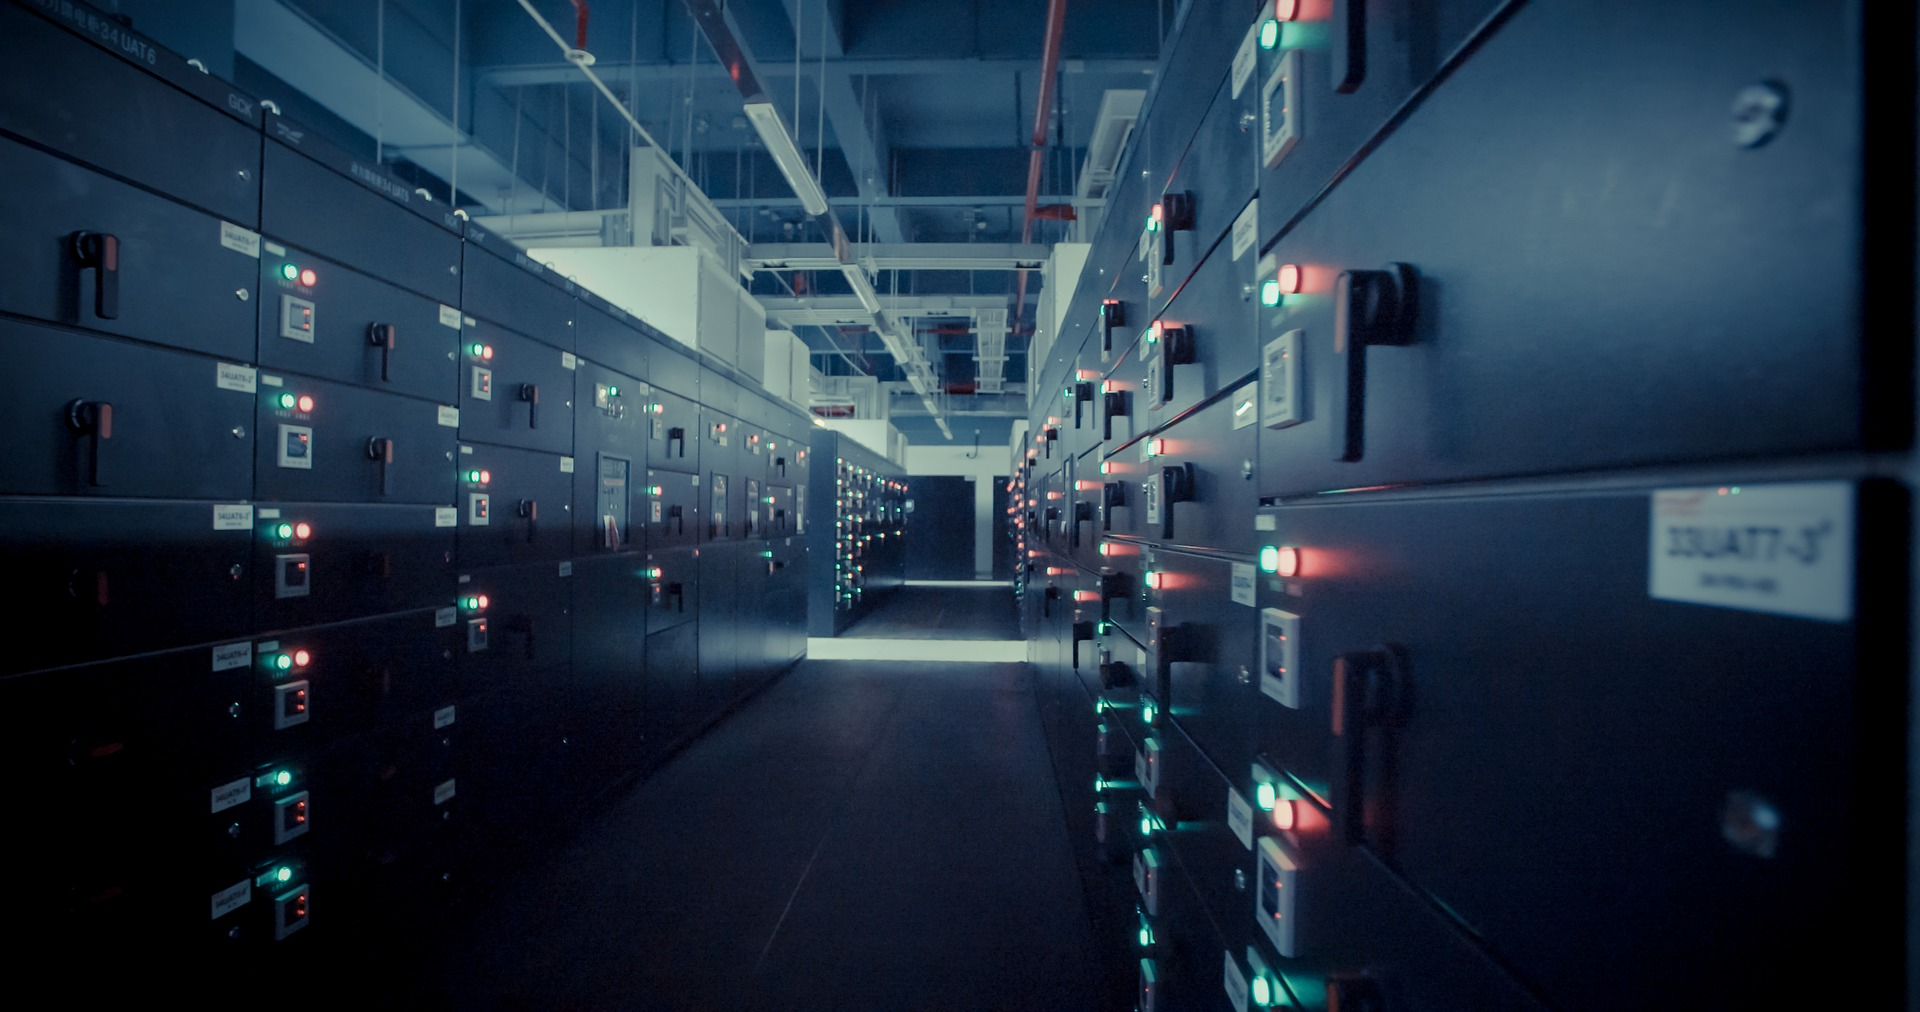 Nigeria: Why do we need Data Centres? (II)